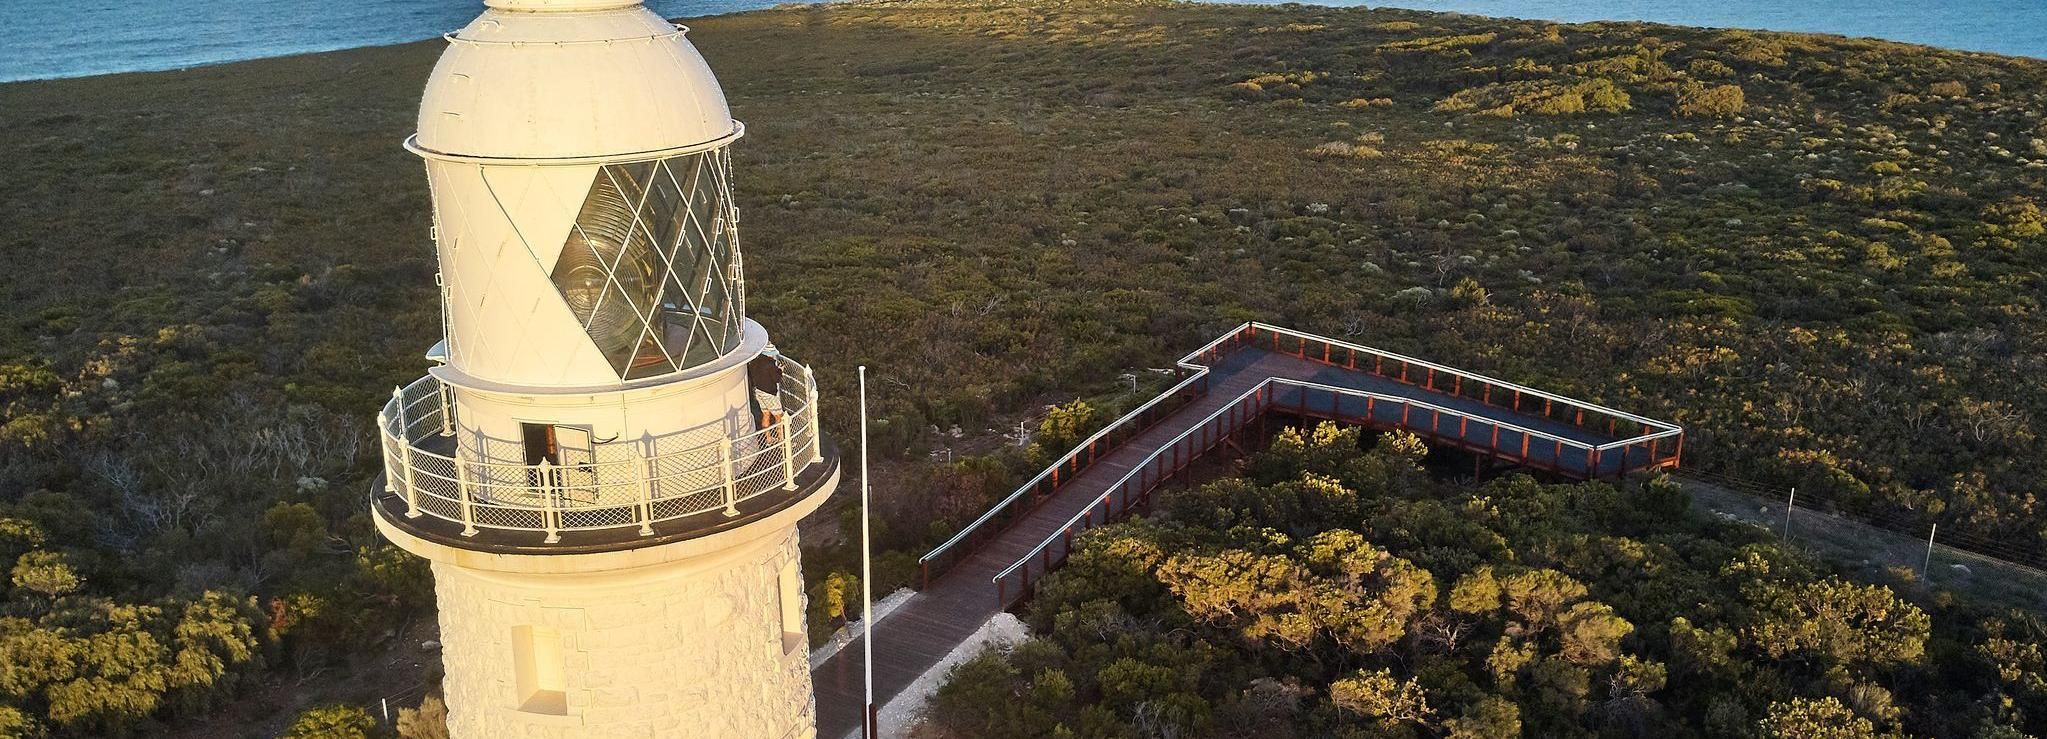 Margaret River: Cape Naturaliste Lighthouse Guided Tour